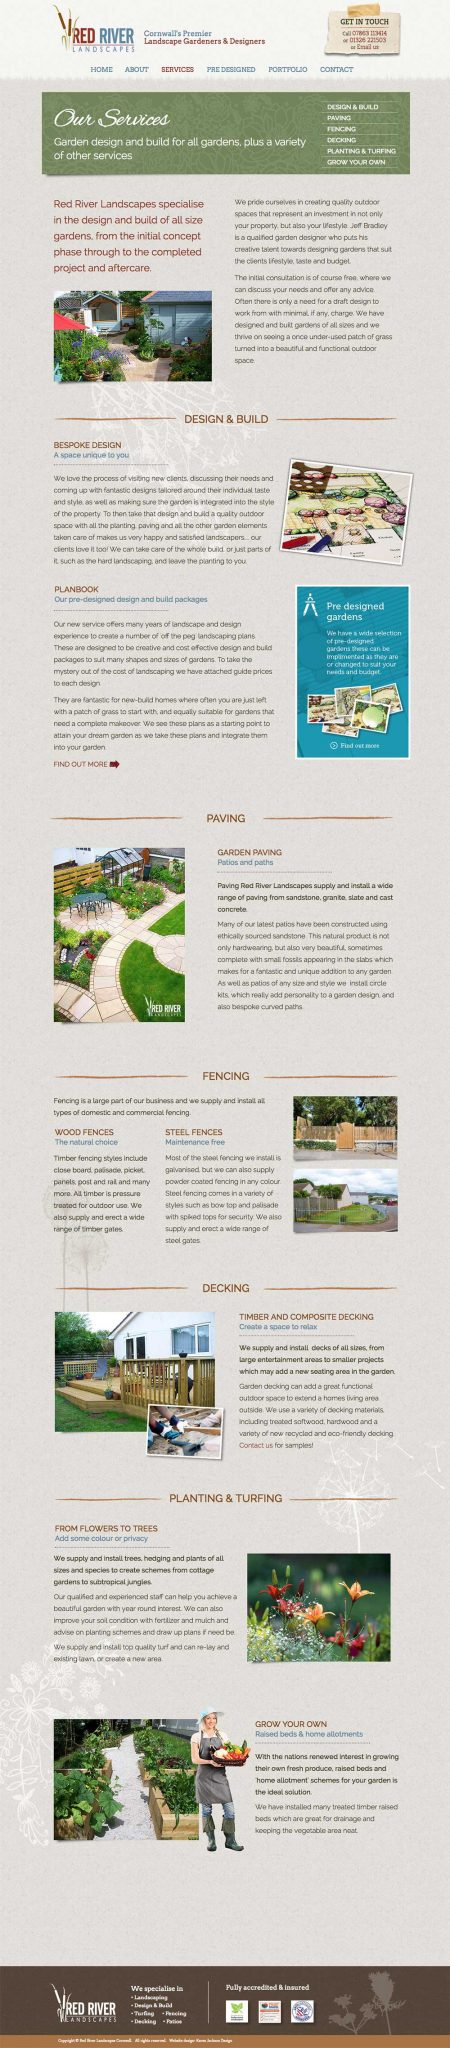 redriver-landscapes-website-design